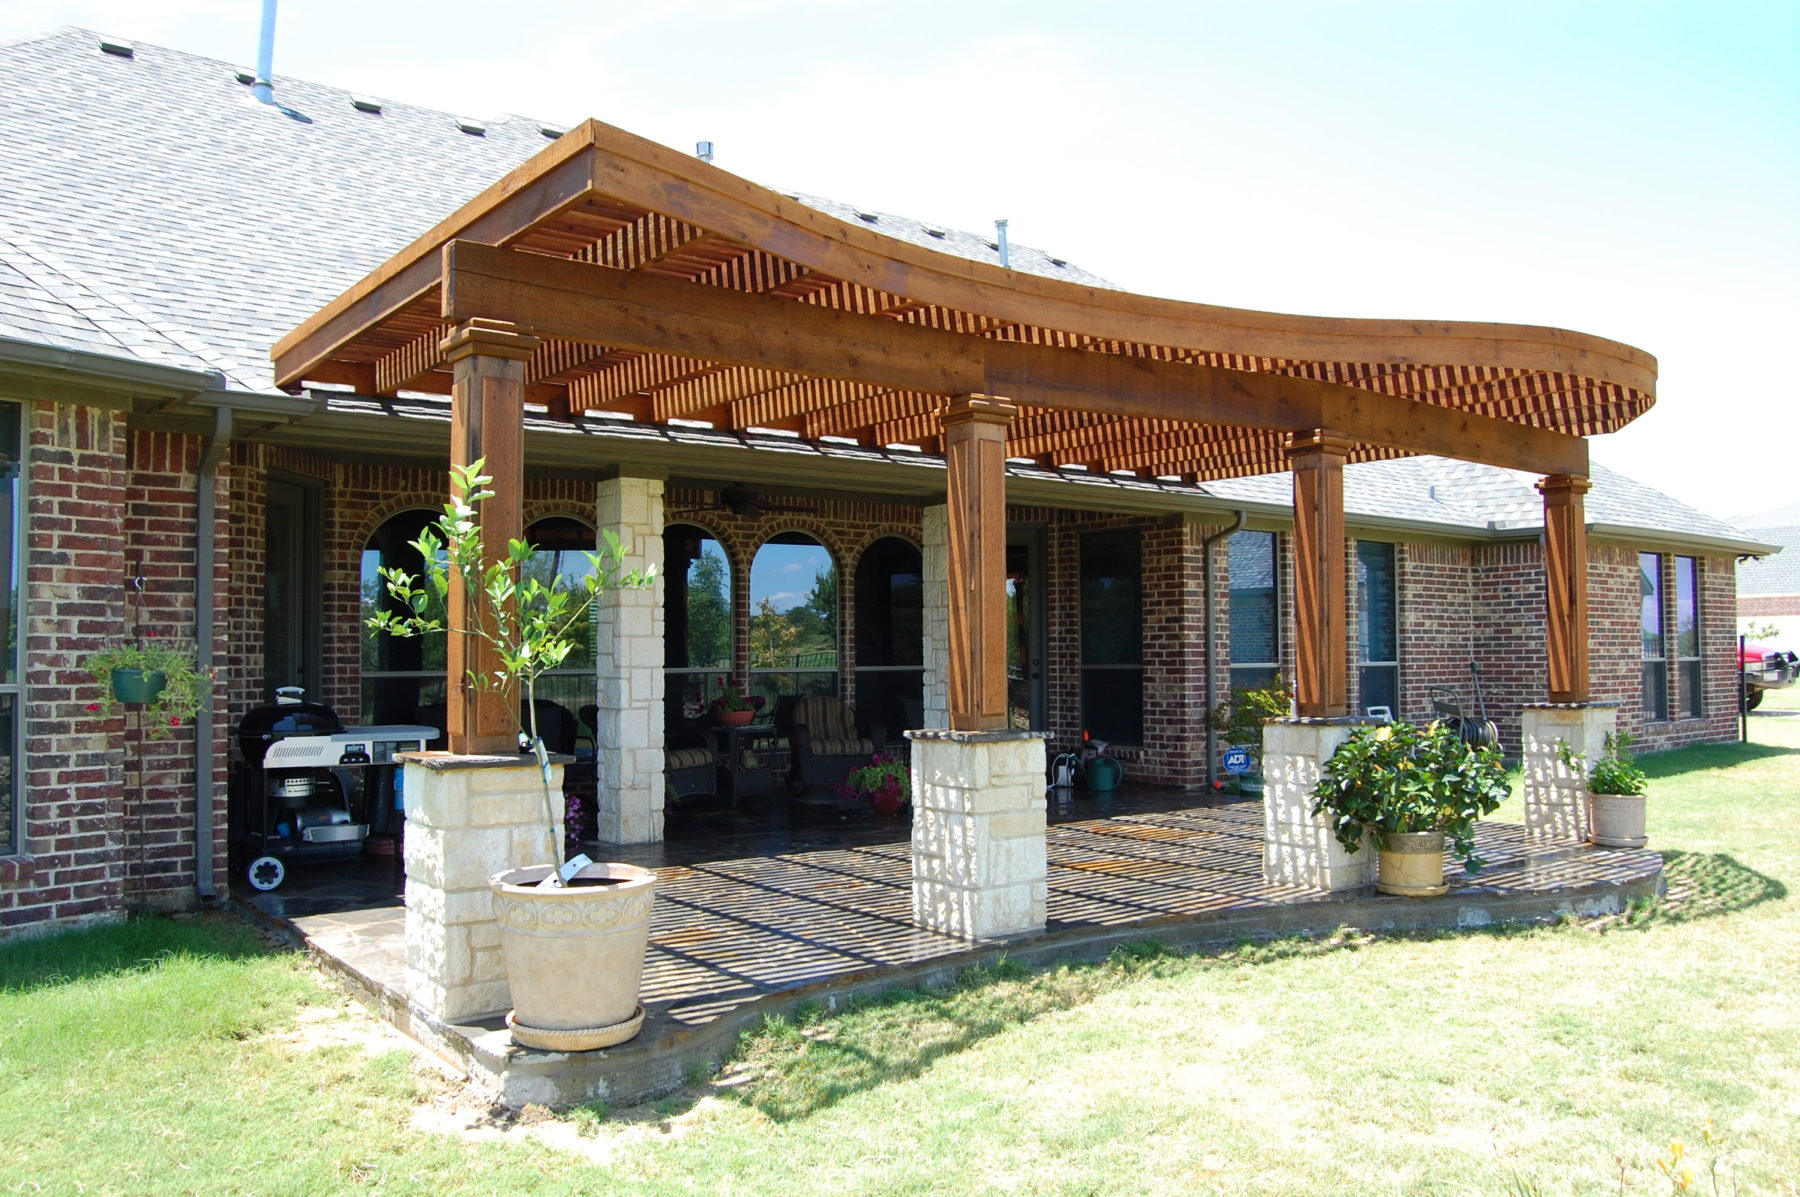 Radius edge shade structures custom patio designs for Shade structures